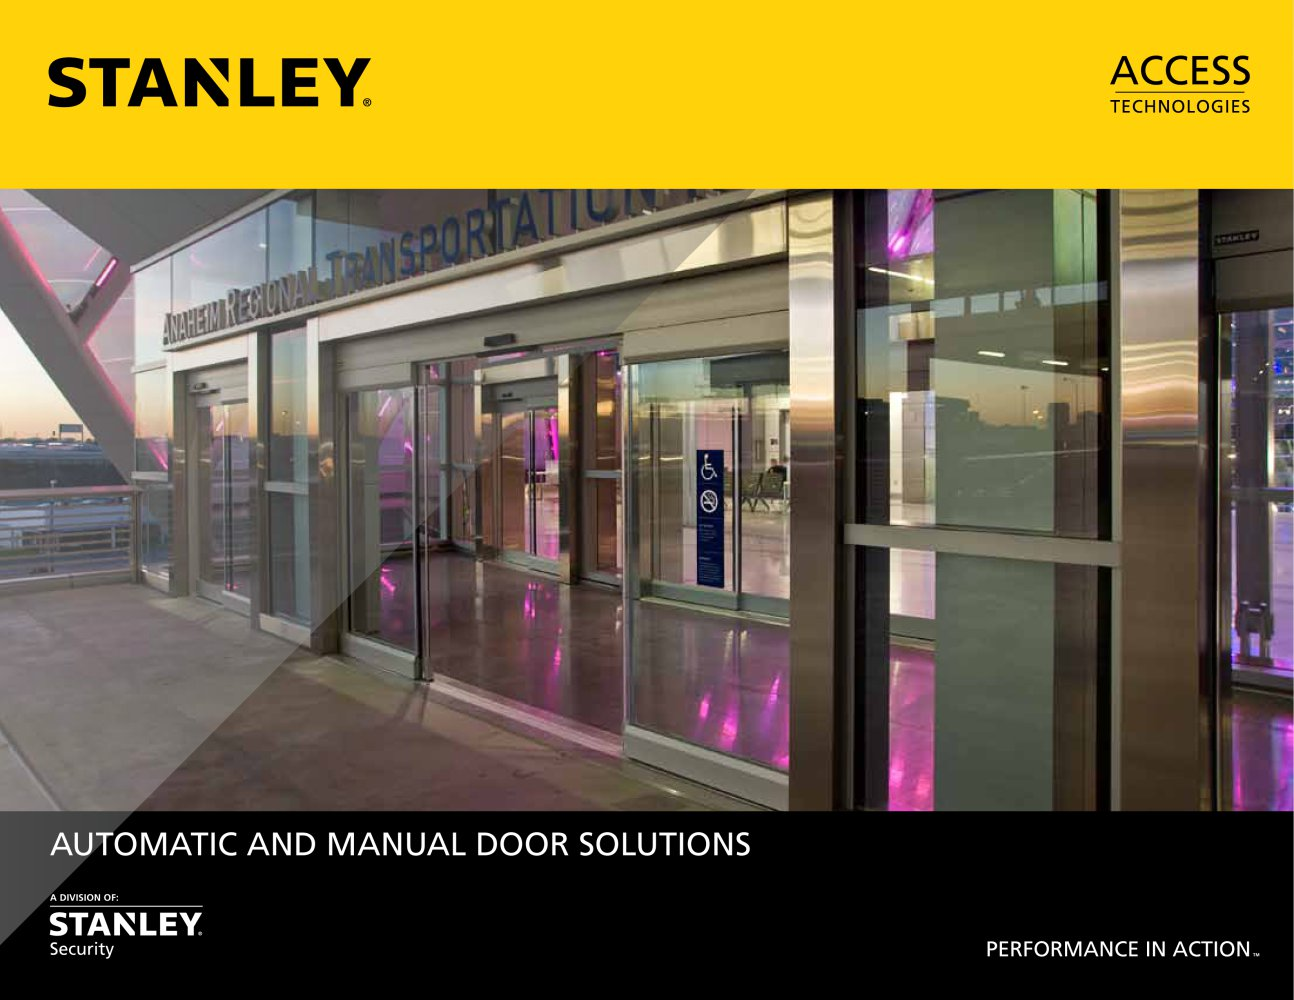 STANLEY Full Product Catalog - Stanley Access Technologies - PDF ...